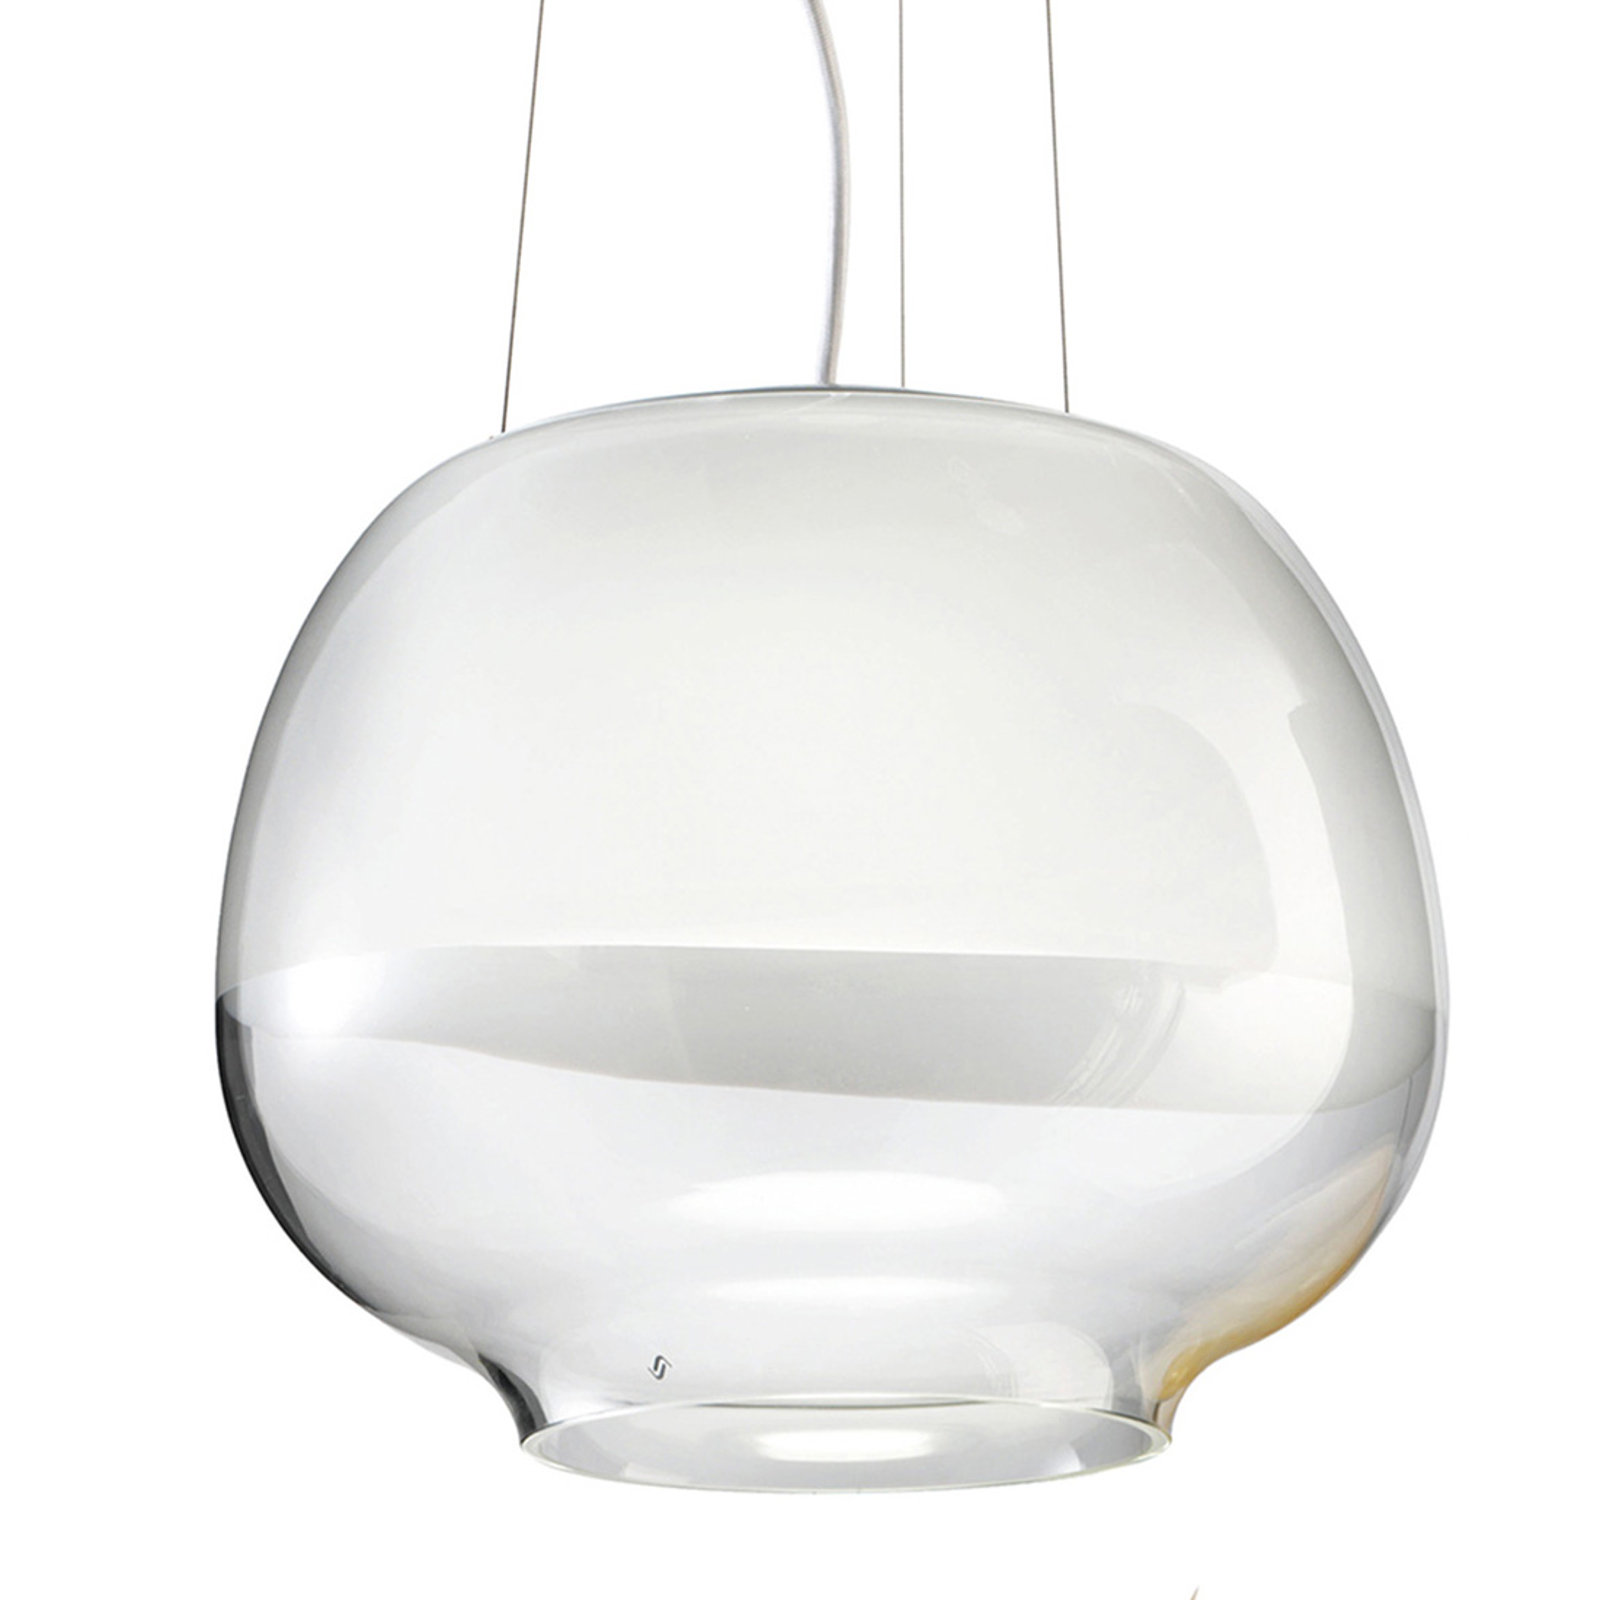 Design-hanglamp Mirage SP, wit